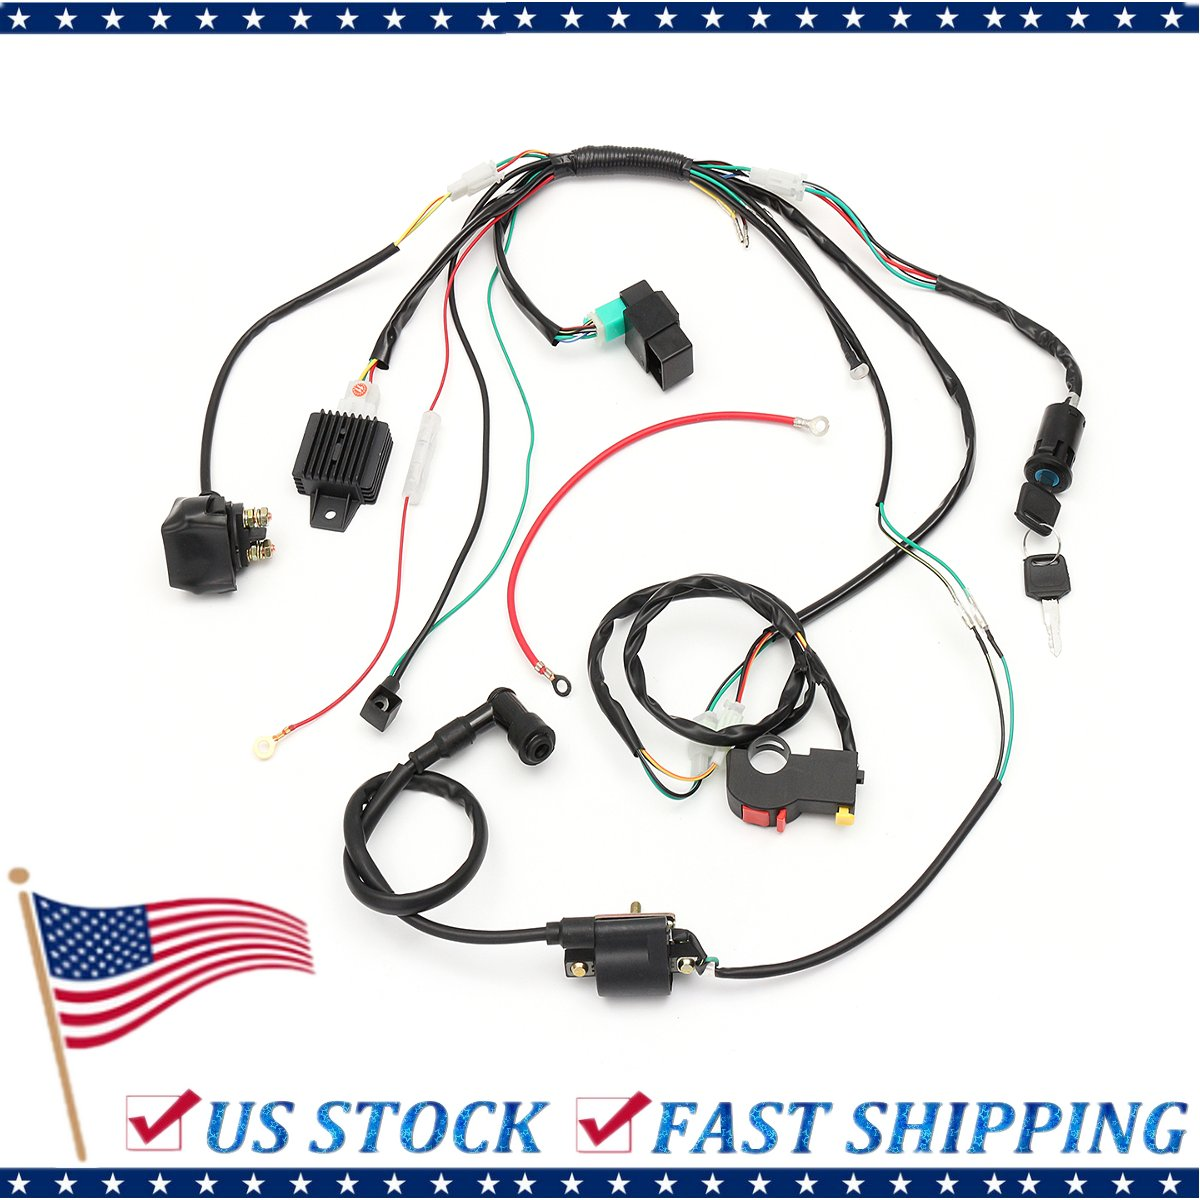 261937016244  Complete Electric Start Engine Wiring Harness Loom for 110 125cc Pit Dirt Quad Bike ATV Buggy